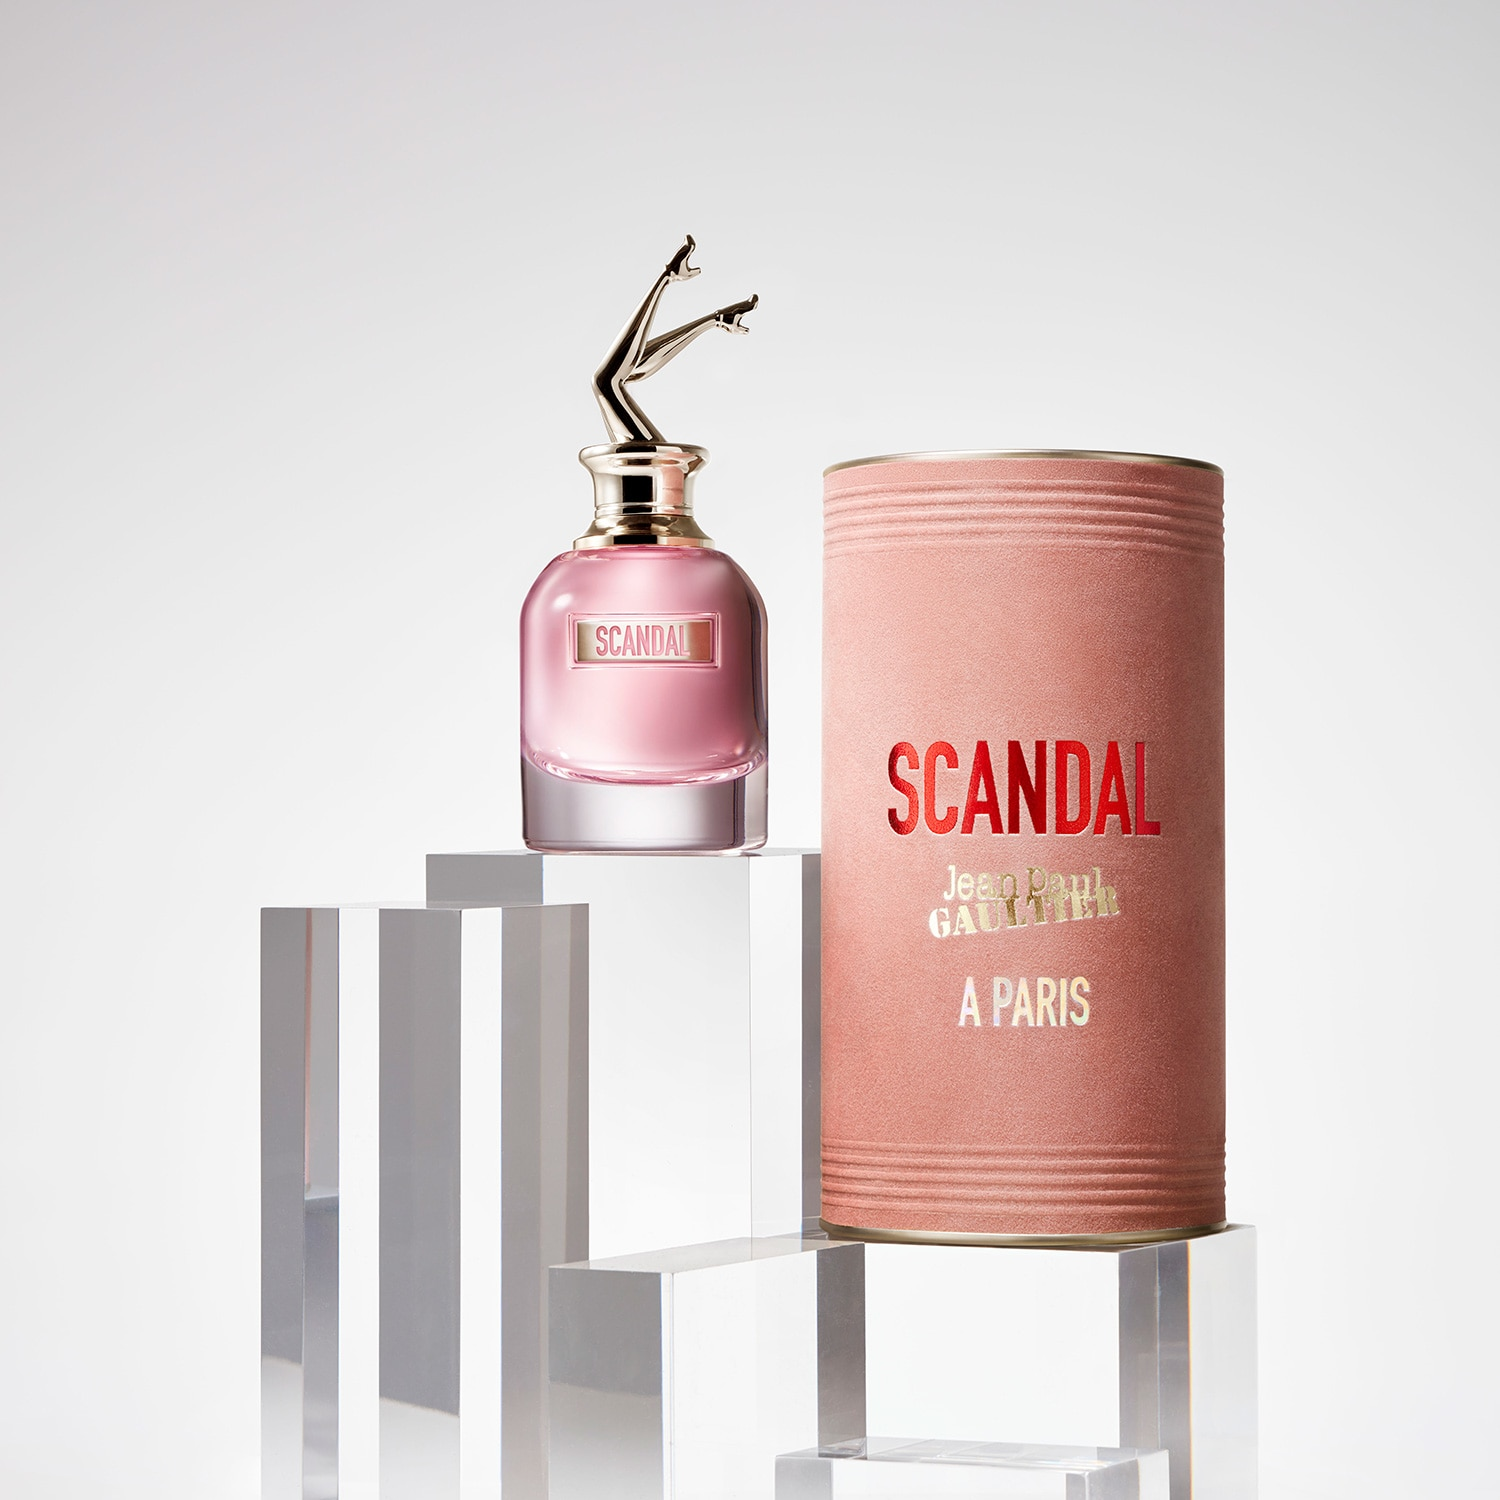 JEAN PAUL GAULTIER SCANDAL A PARIS EAU DE PARFUM 80ML